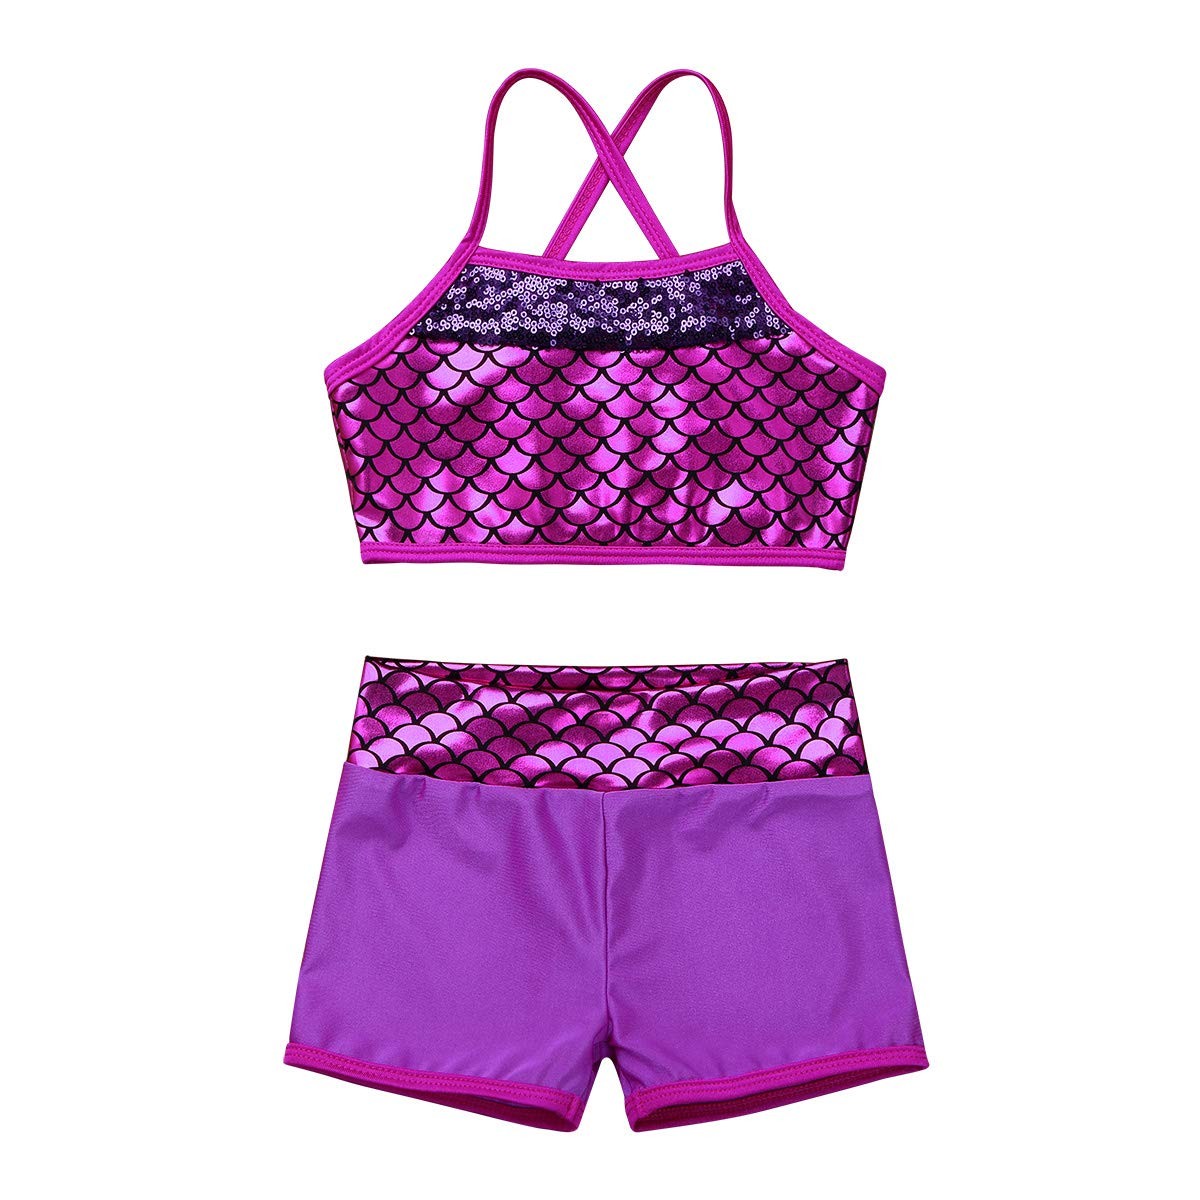 ACSUSS Girls 2PCS Sequins Mermaid Tankini Crop Top Bra with Booty Shorts Ballet Dance Wear